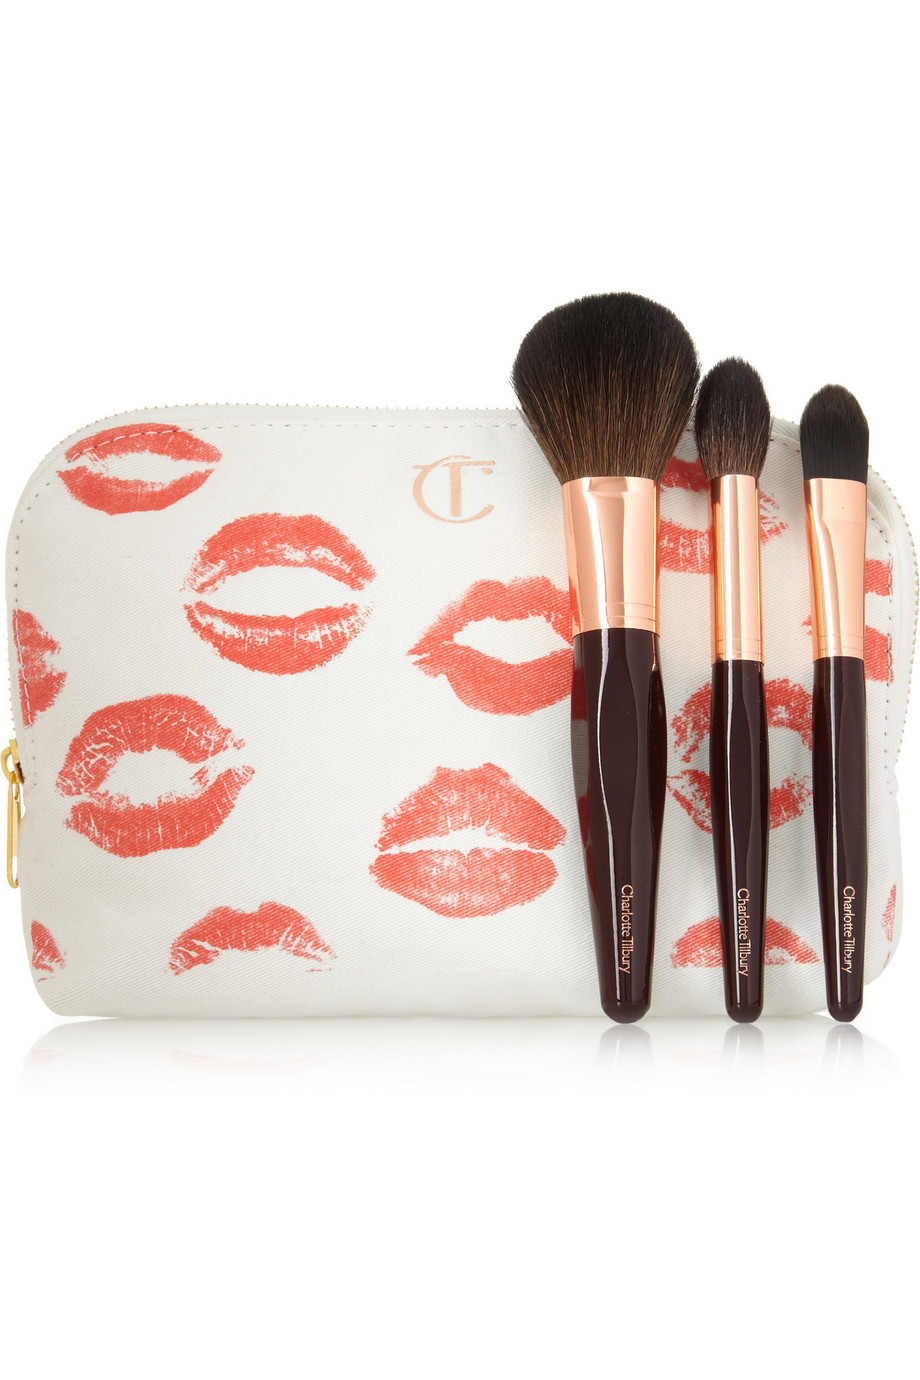 Charlotte Tilbury Set of Three Complexion Brushes